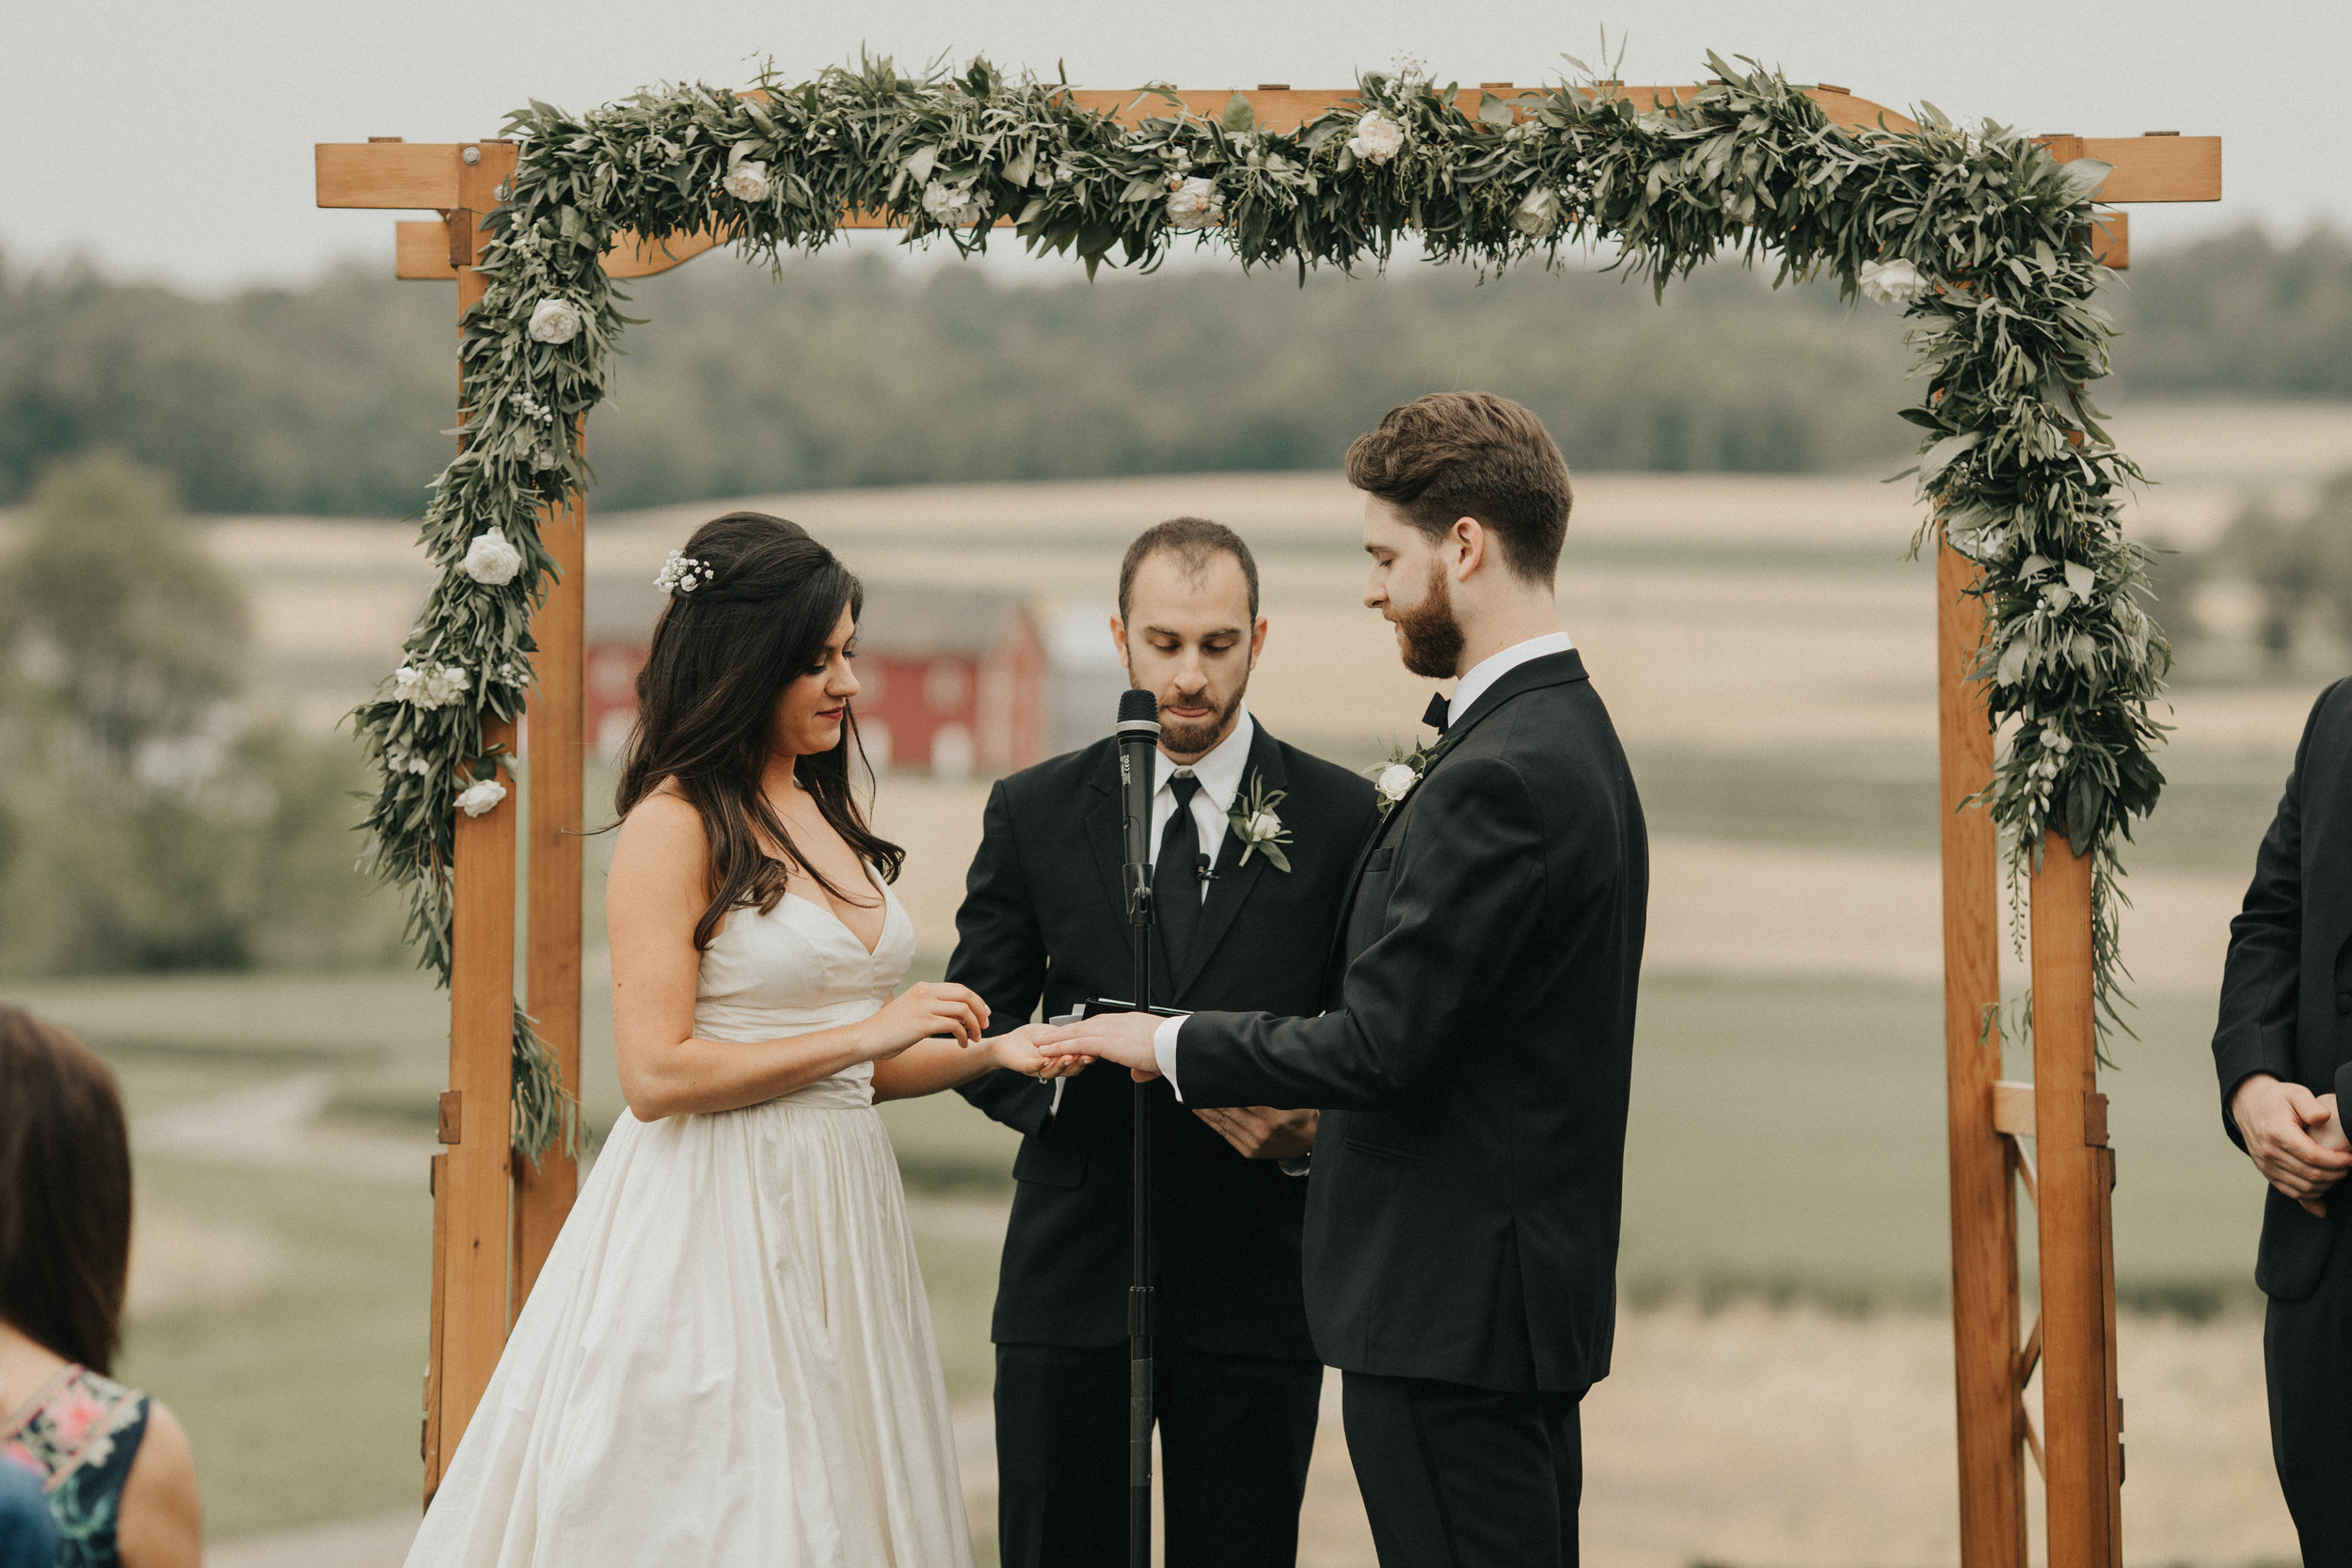 A simple green and white garland can be the perfect accent to frame your ceremony.